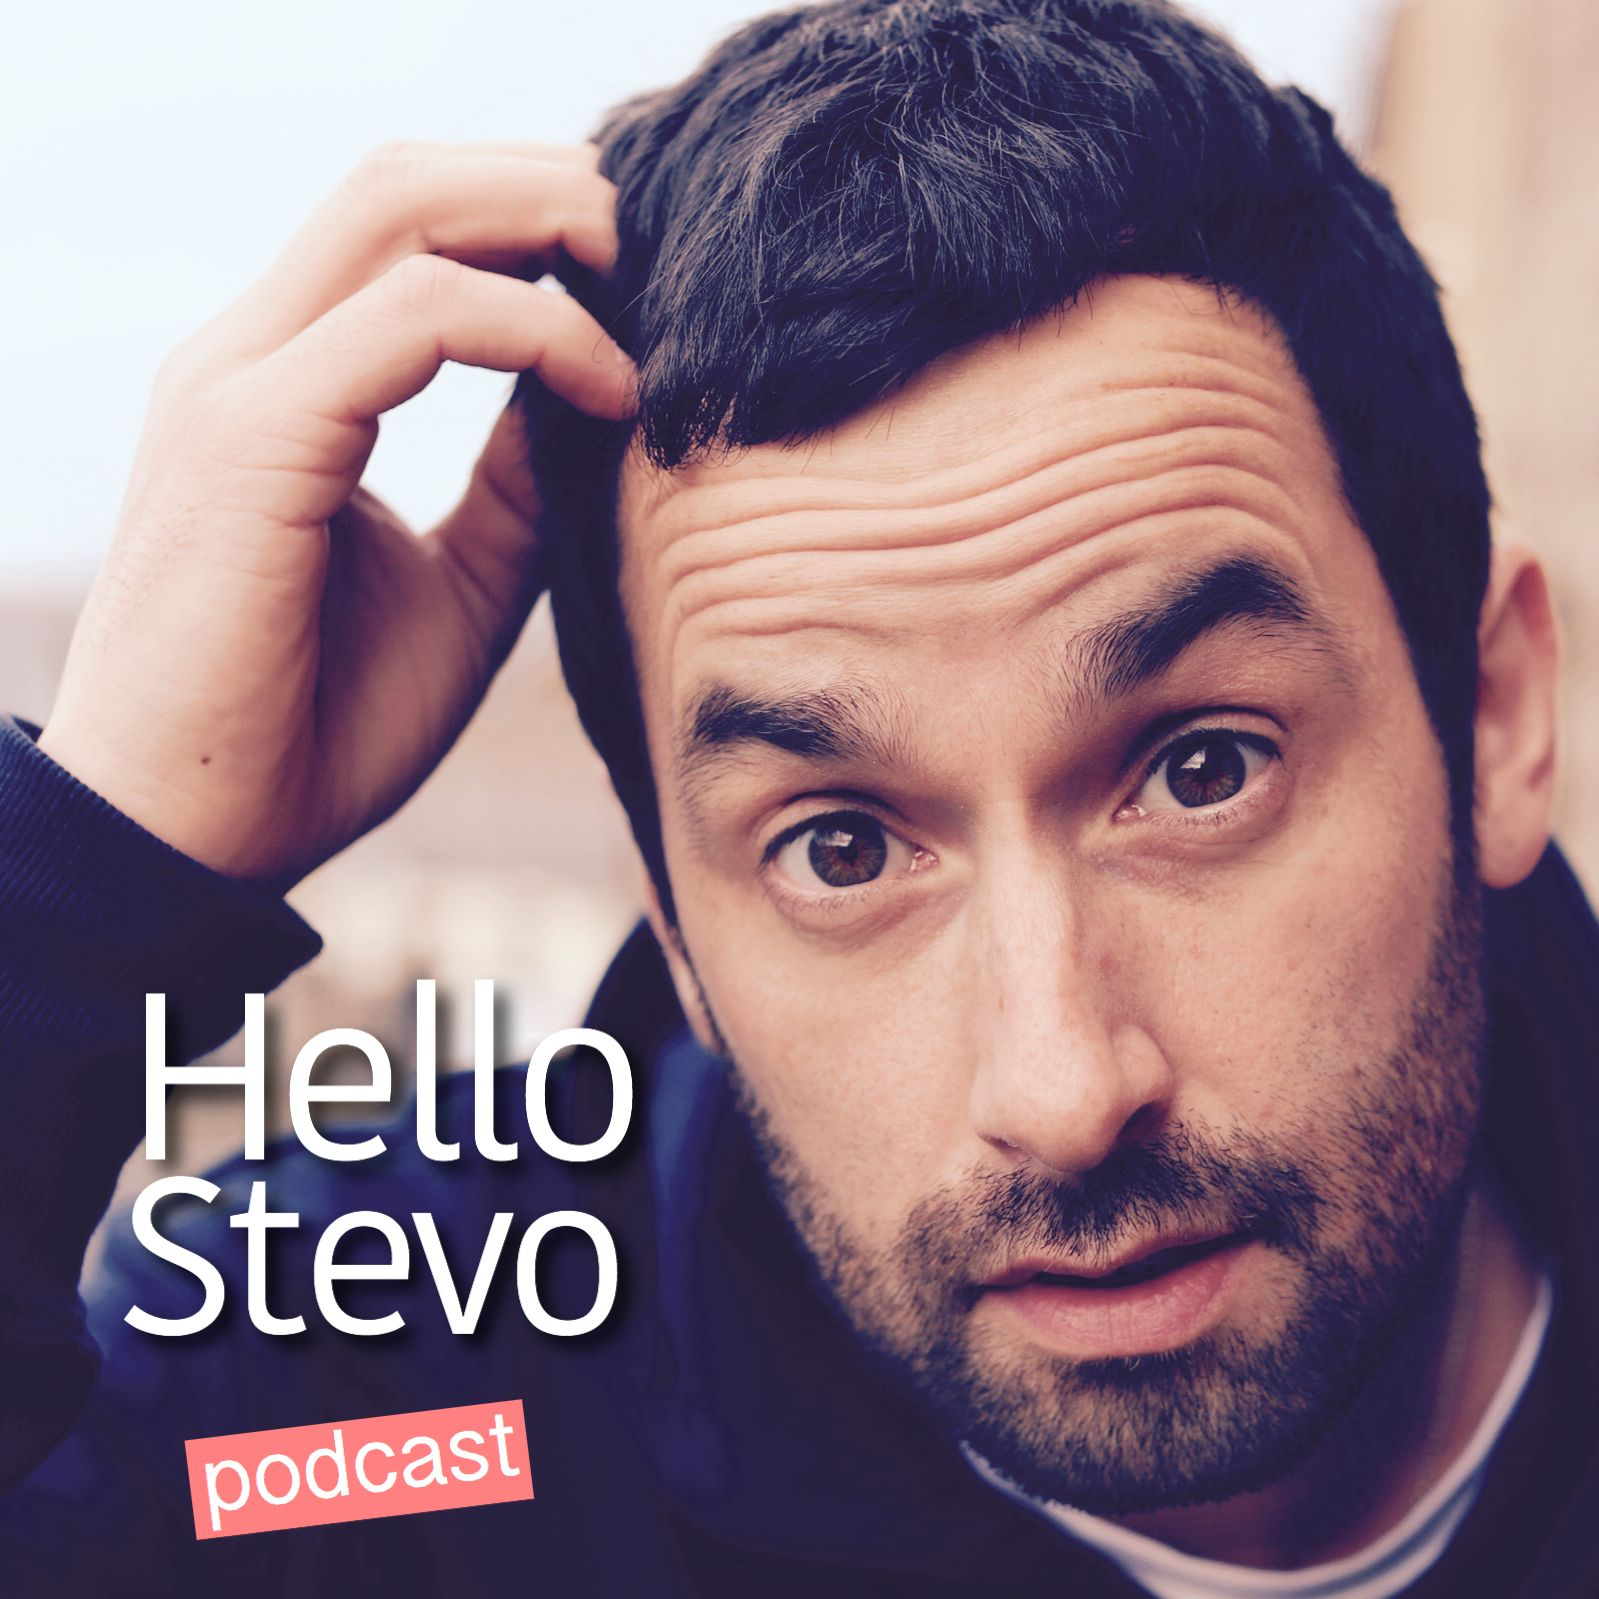 Breakfast With Kevin | Hello Stevo Podcast Ep #17